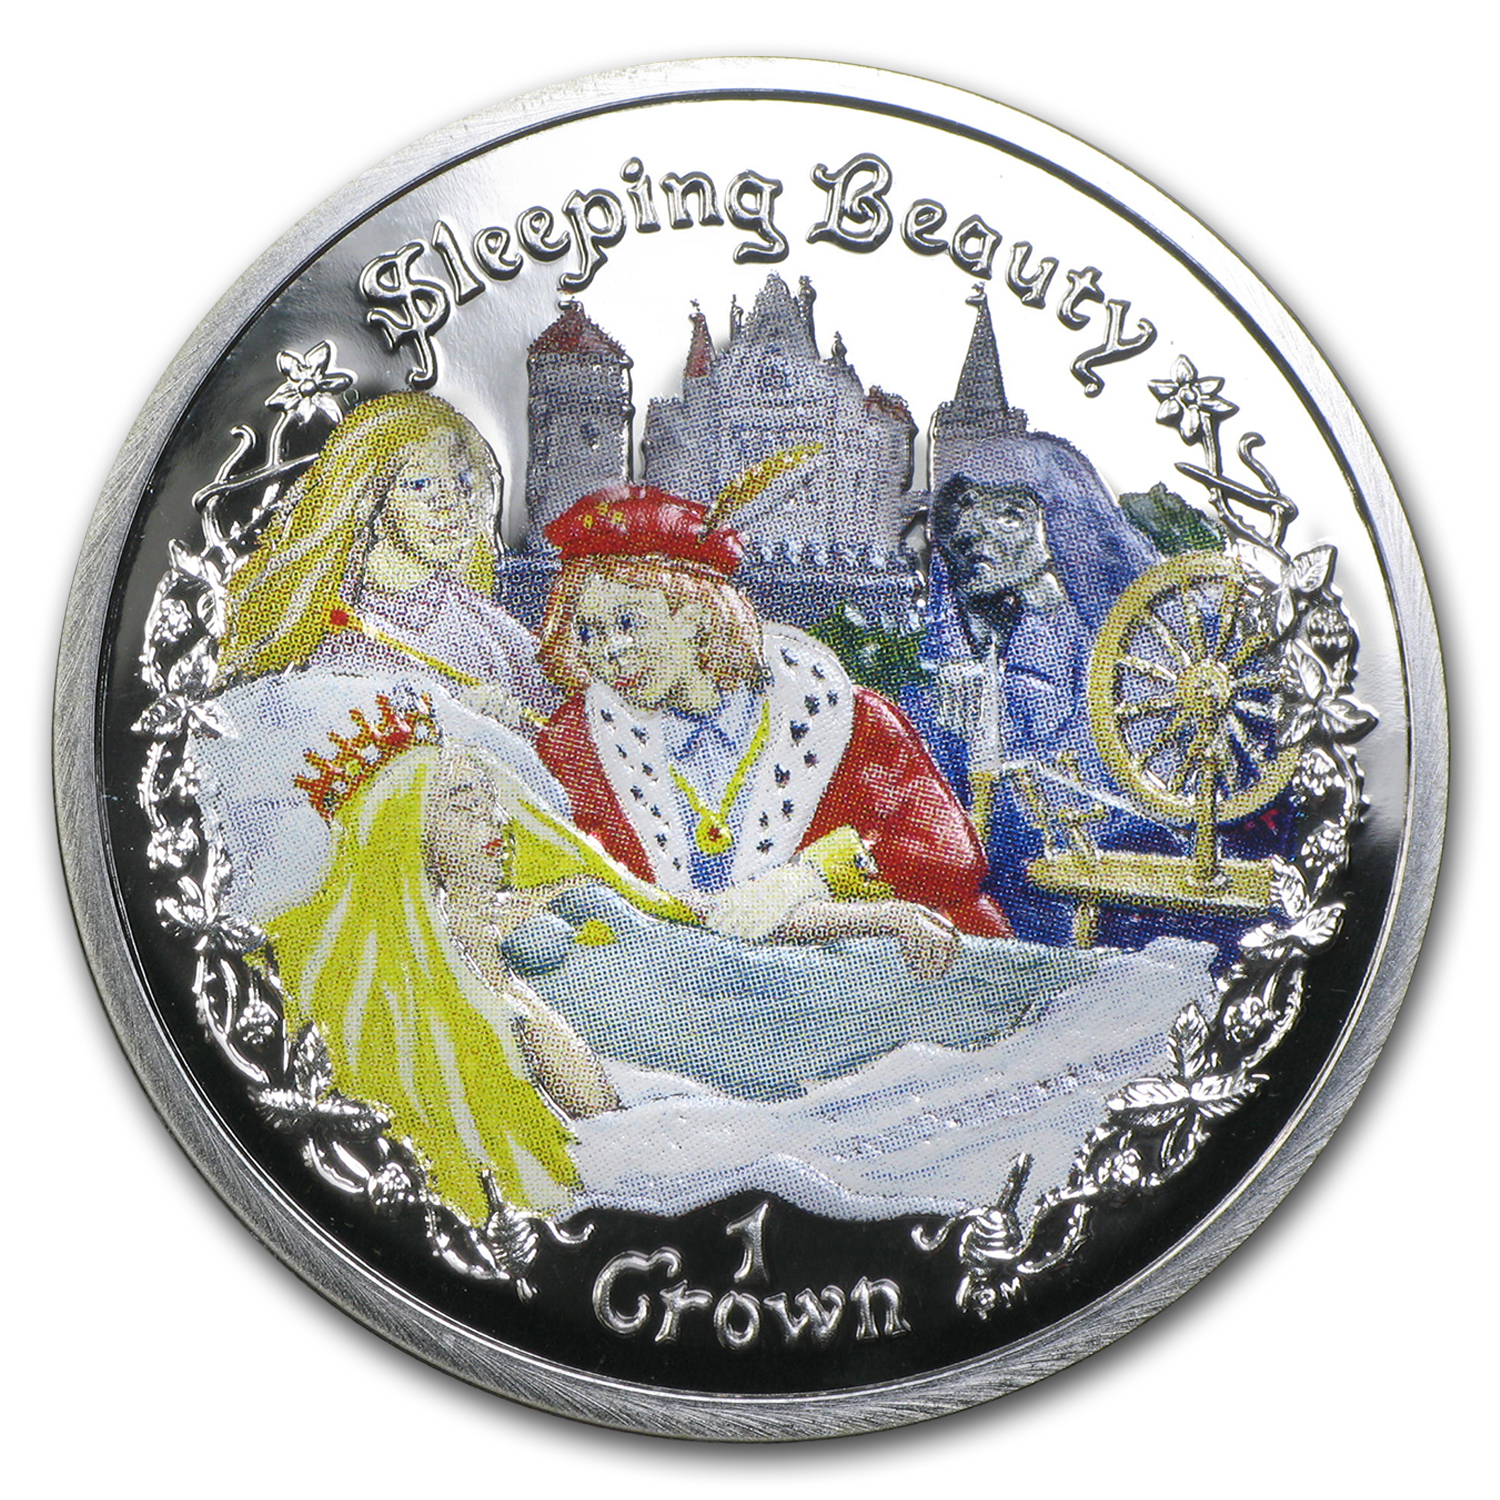 2007 Isle of Man 1 Crown Sleeping Beauty Proof (Colorized)